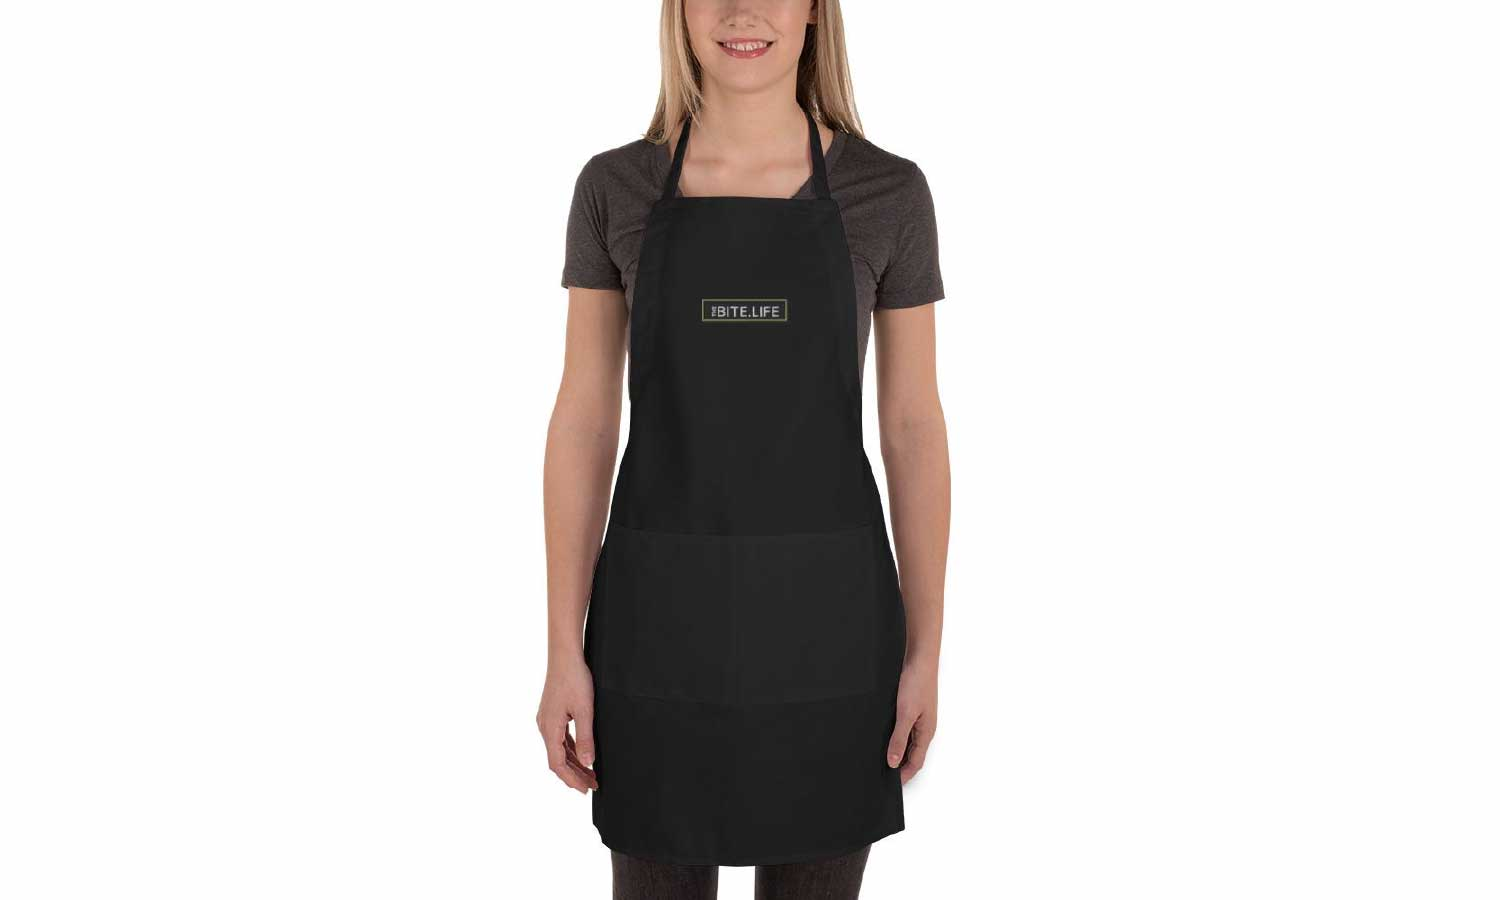 TheBite.Life Embroidered Apron - Black